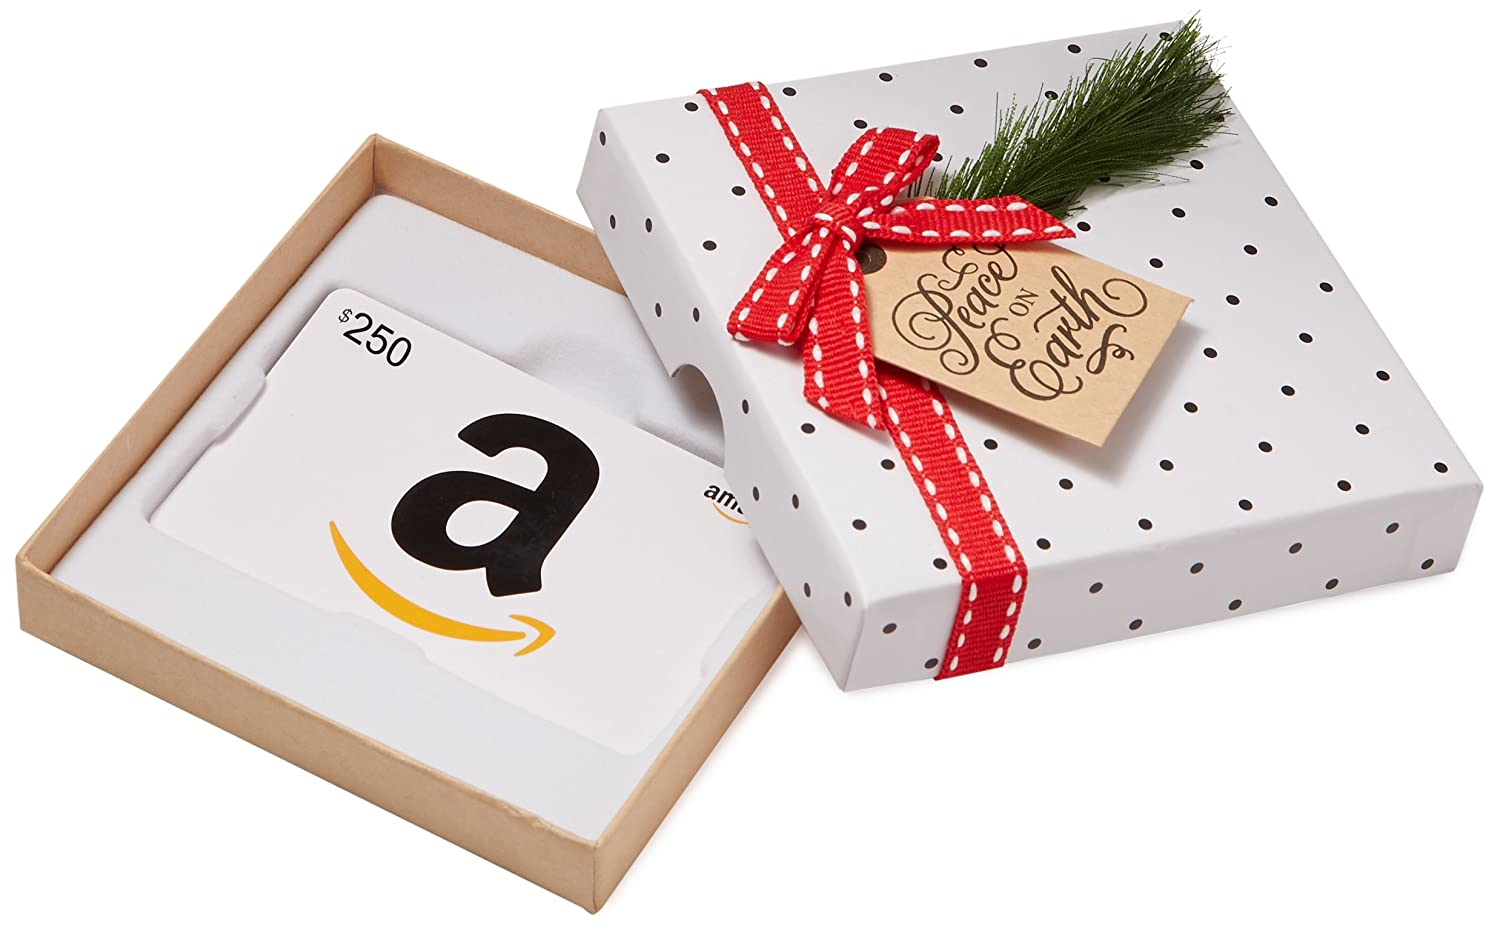 Amazon.ca Gift Card in a Holiday Sprig Box (Classic White Card Design) Amazon.com.ca Inc.